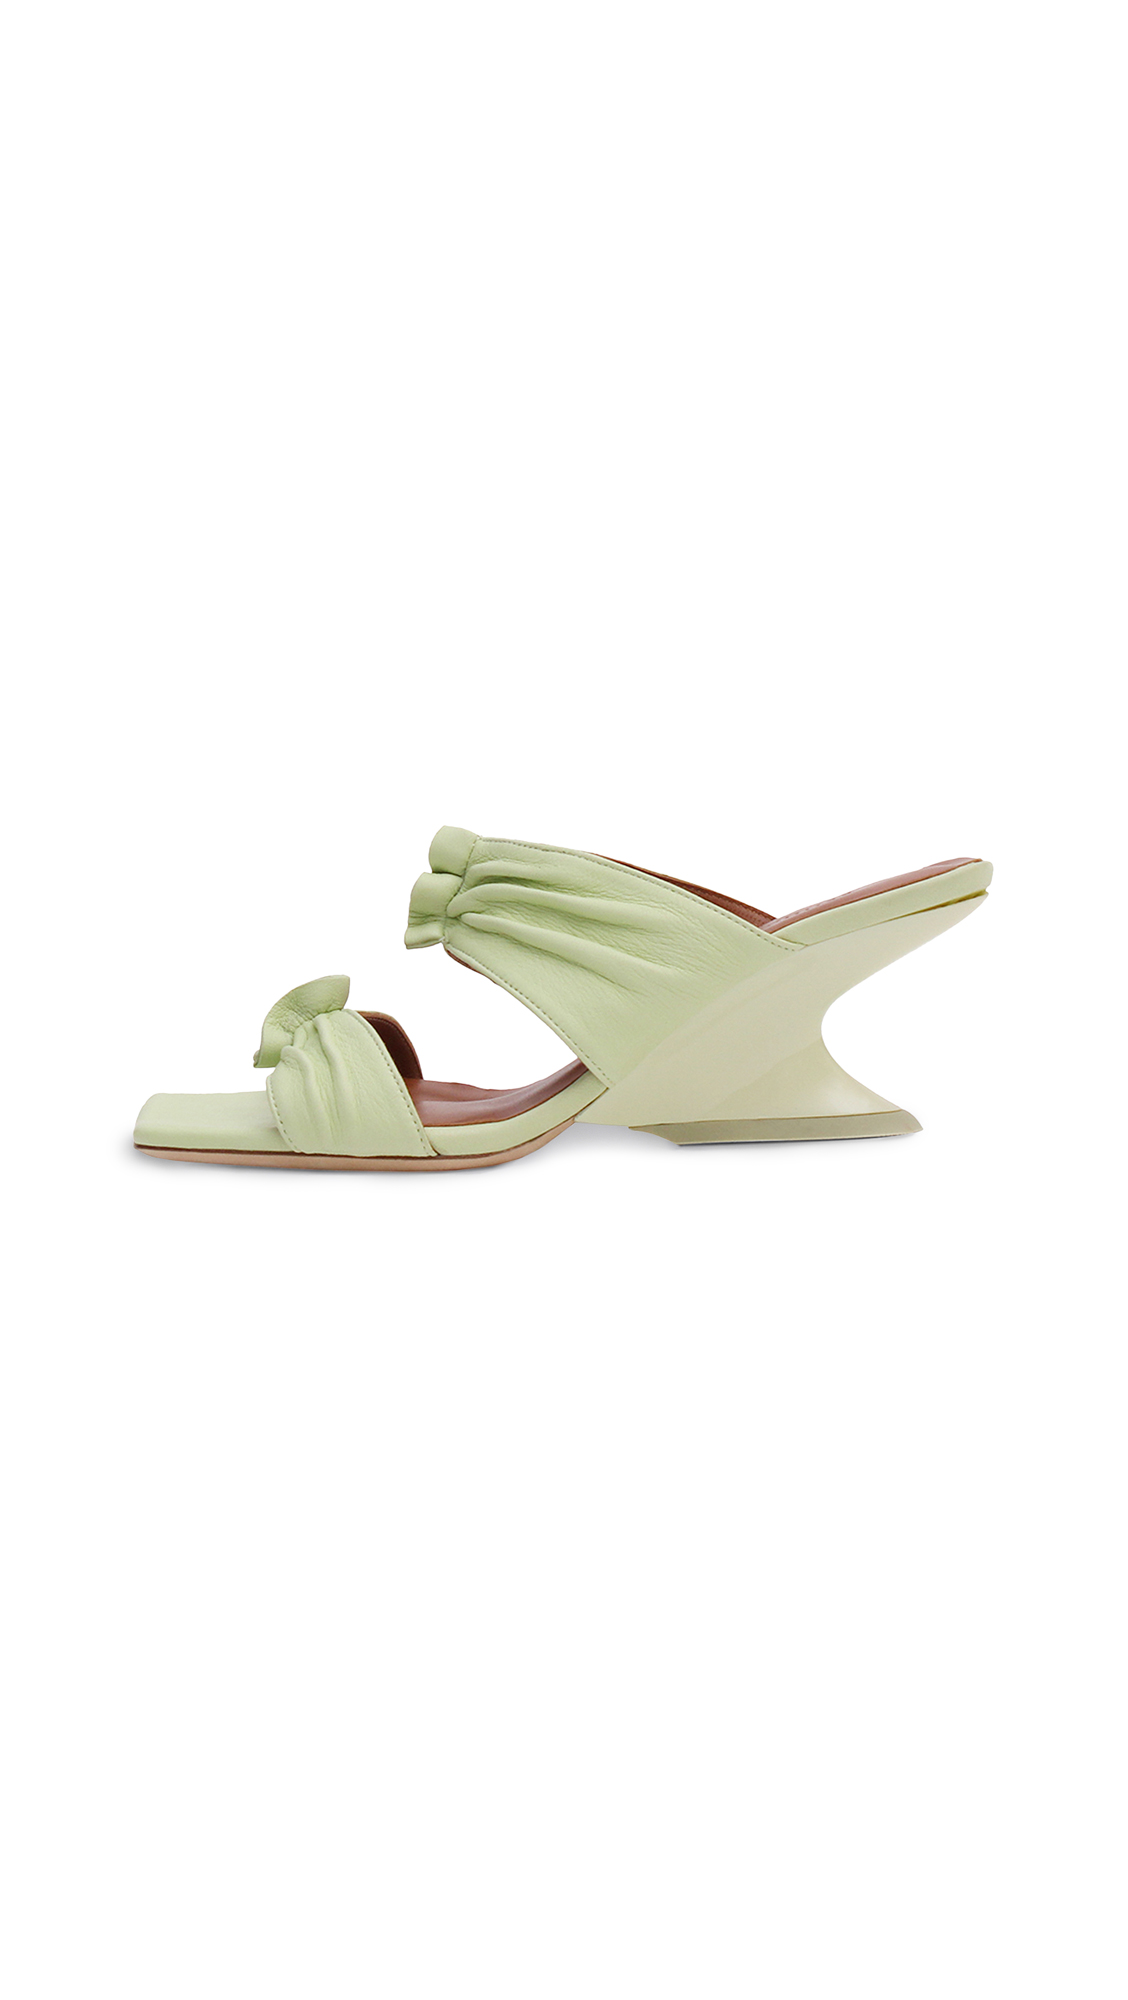 Rejina Pyo Camilla Sandals 60mm - 50% Off Sale